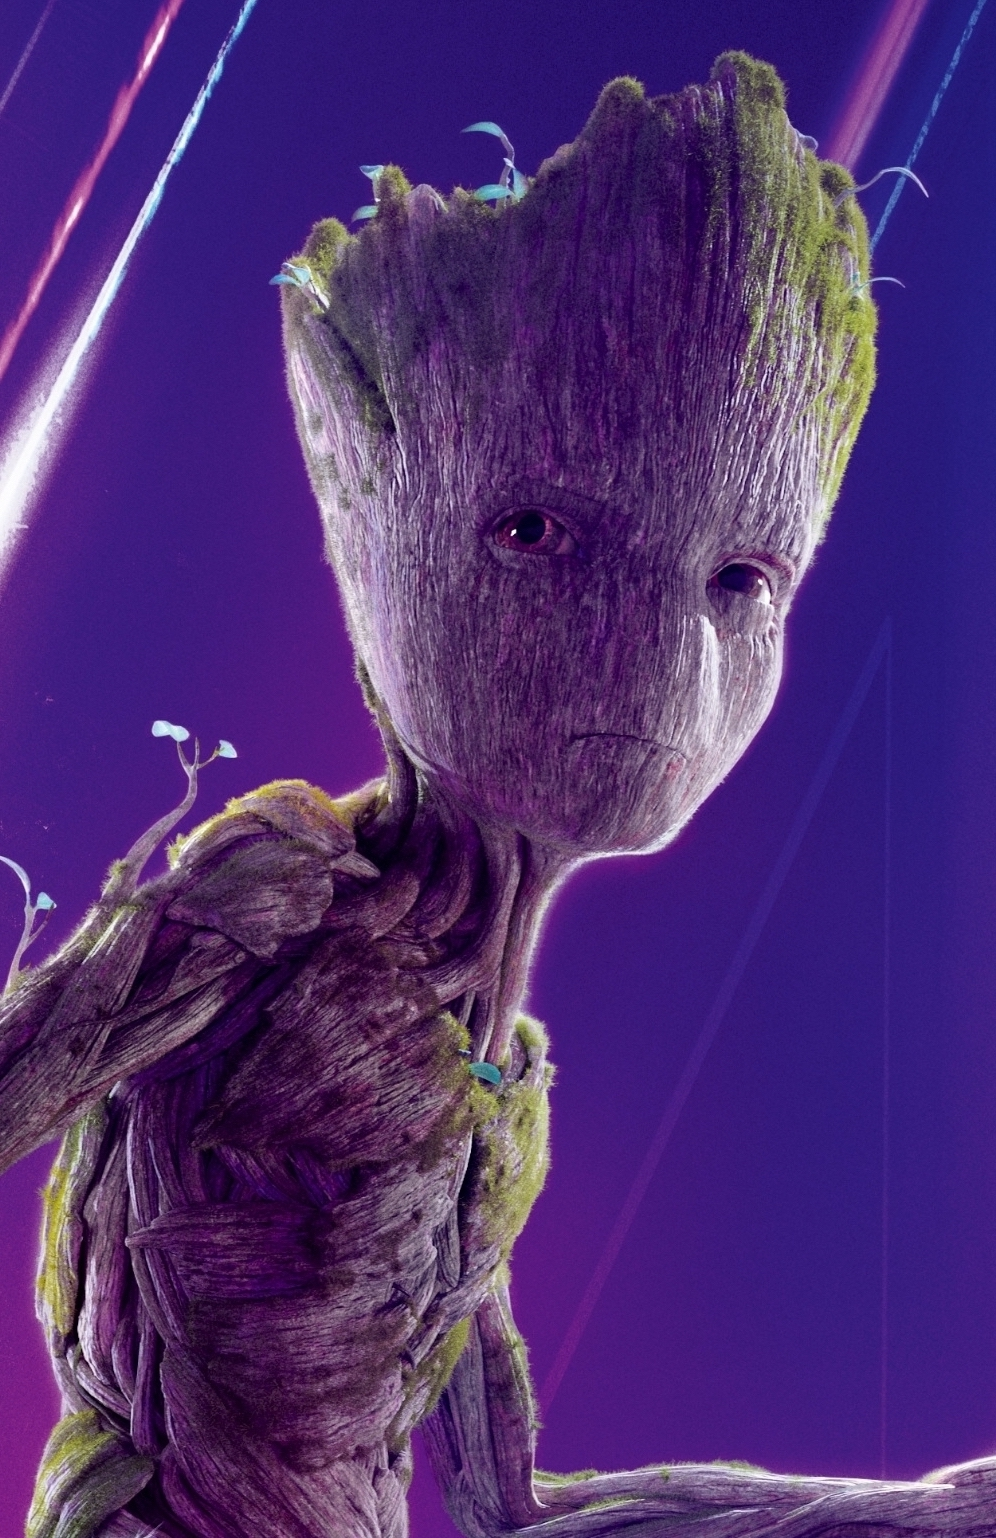 groot marvel cinematic universe wiki fandom powered by wikia